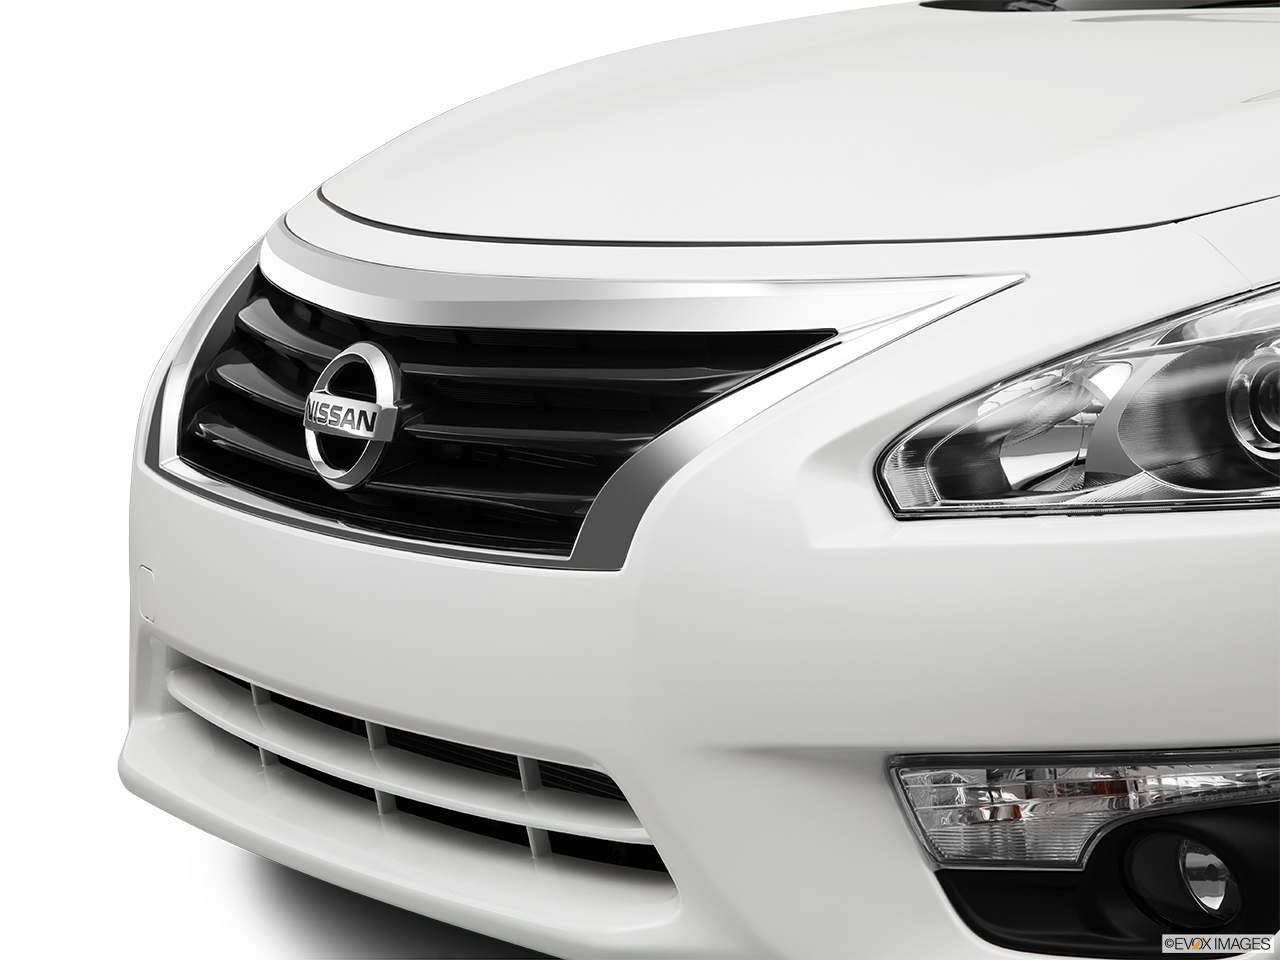 Nissan Altima 2.5 S >> 2014 Nissan Altima Sedan I4 2.5 SL - Close up of Grill